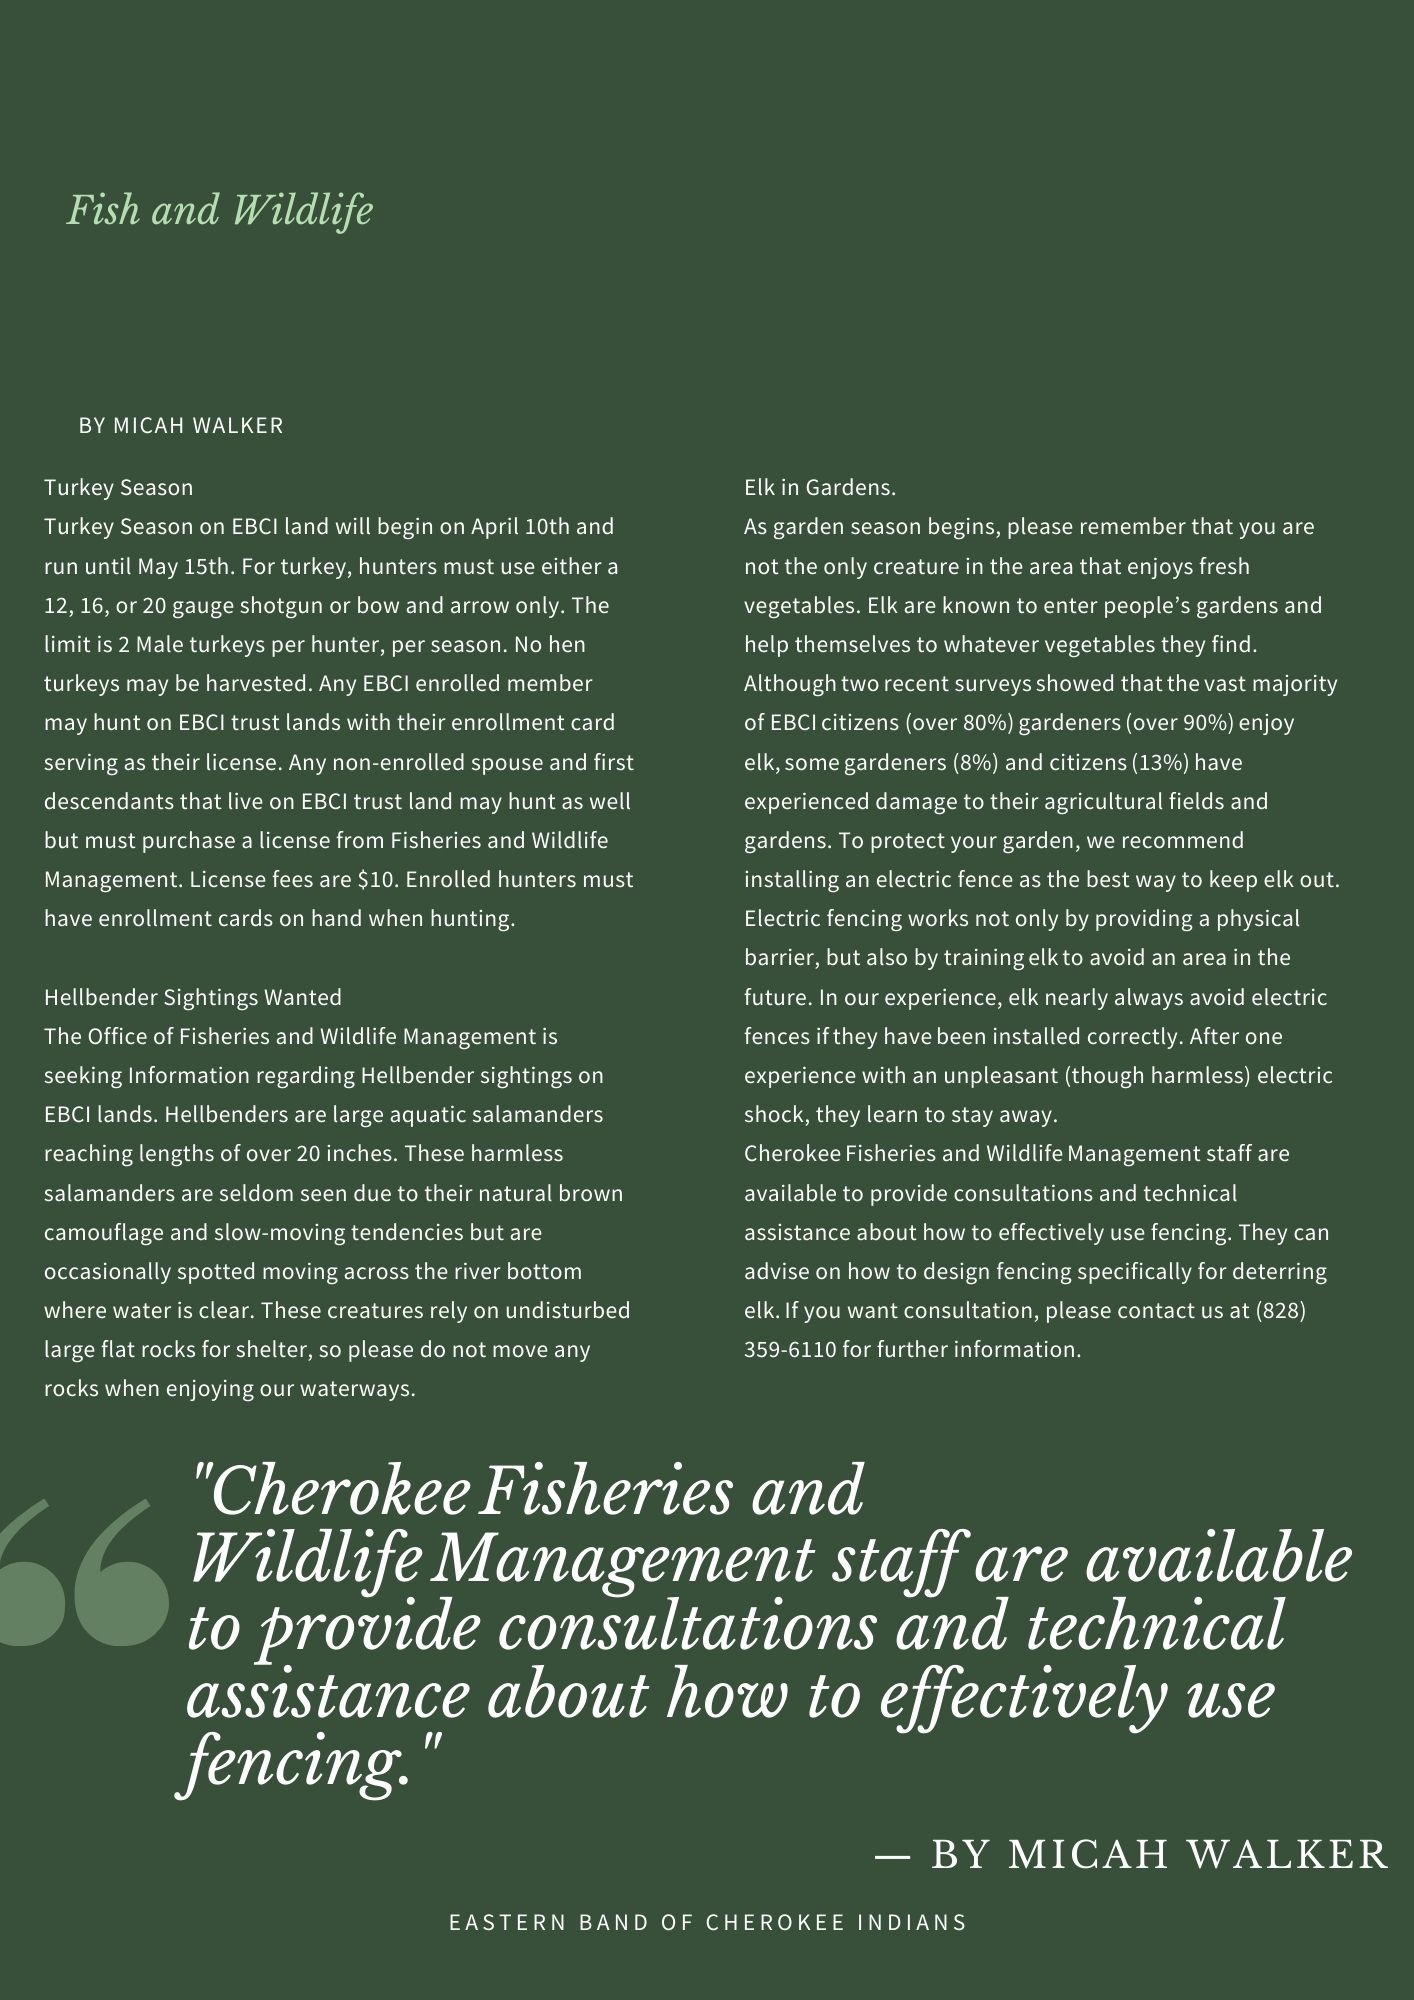 Fish and Wildlife Newsletter Articles April 2021 By: Micah Walker Turkey Season Turkey Season on EBCI land will begin on April 10th and run until May 15th. For turkey, hunters must use either a 12, 16, or 20 gauge shotgun or bow and arrow only. The limit is 2 Male turkeys per hunter, per season. No hen turkeys may be harvested. Any EBCI enrolled member may hunt on EBCI trust lands with their enrollment card serving as their license. Any non-enrolled spouse and first descendants that live on EBCI trust land may hunt as well but must purchase a license from Fisheries and Wildlife Management. License fees are $10. Enrolled hunters must have enrollment cards on hand when hunting. Hellbender Sightings Wanted The Office of Fisheries and Wildlife Management is seeking Information regarding Hellbender sightings on EBCI lands. Hellbenders are large aquatic salamanders reaching lengths of over 20 inches. These harmless salamanders are seldom seen due to their natural brown camouflage and slow-moving tendencies but are occasionally spotted moving across the river bottom where water is clear. These creatures rely on undisturbed large flat rocks for shelter, so please do not move any rocks when enjoying our waterways. Elk in Gardens As garden season begins, please remember that you are not the only creature in the area that enjoys fresh vegetables. Elk are known to enter people's gardens and help themselves to whatever vegetables they find. Althoughtworecent surveysshowed thatthevast majority of EBCIcitizens (over 80%)gardeners(over 90%)enjoy elk,somegardeners (8%) and citizens(13%)have experienced damage to their agricultural fields and gardens. To protect your garden, we recommend installing an electric fence as the best way to keep elk out. Electric fencing works not only by providing a physical barrier, but also by trainingelkto avoid an area in the future. In our experience, elk nearly always avoid electric fences ifthey havebeen installed correctly. After one experience wi